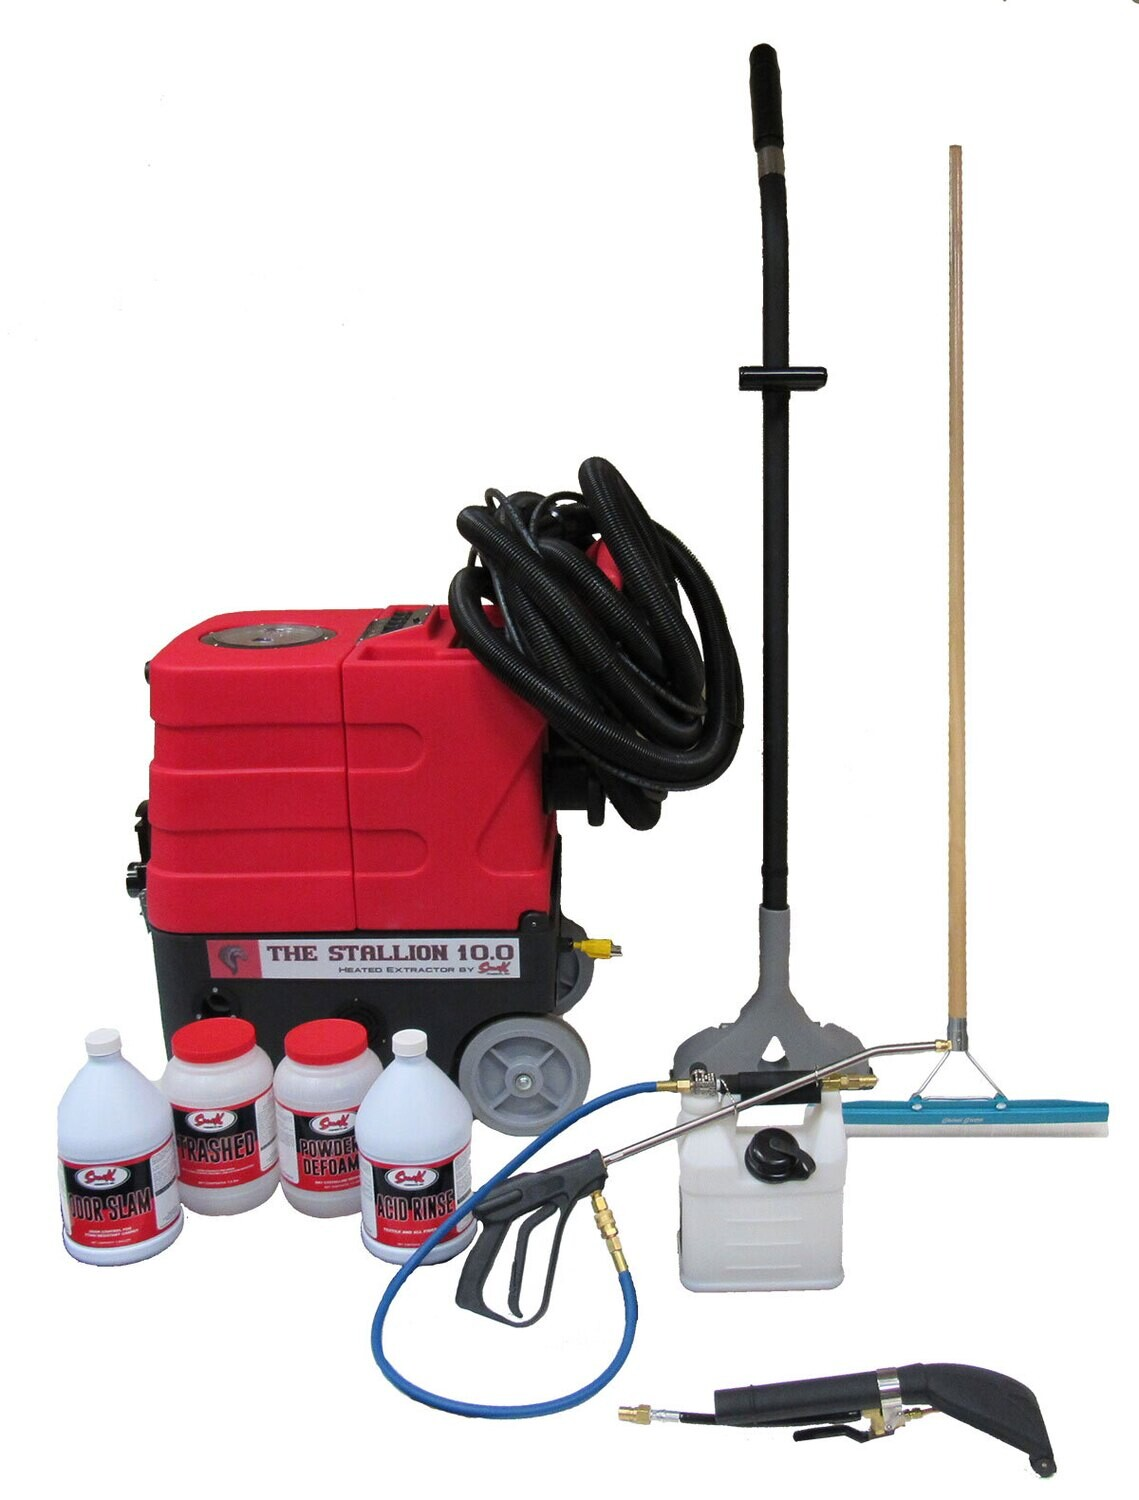 Complete Carpet Cleaning Equipment Package – Stallion 10.0